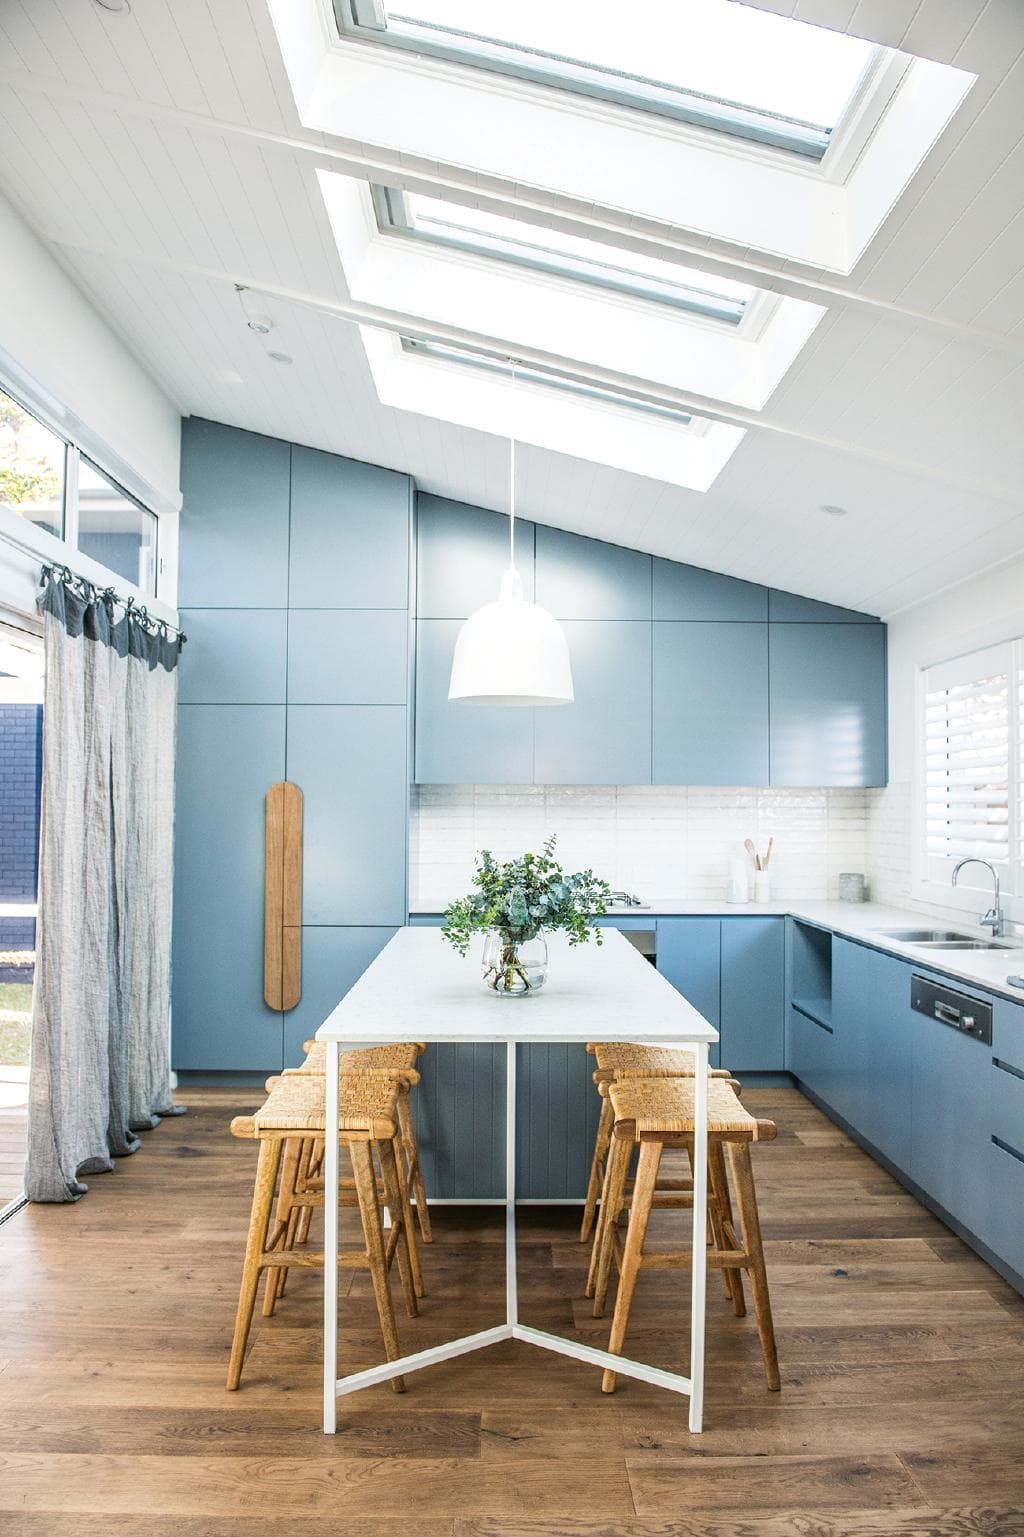 Top kitchens that nail space efficiency and aesthetics also rh pinterest